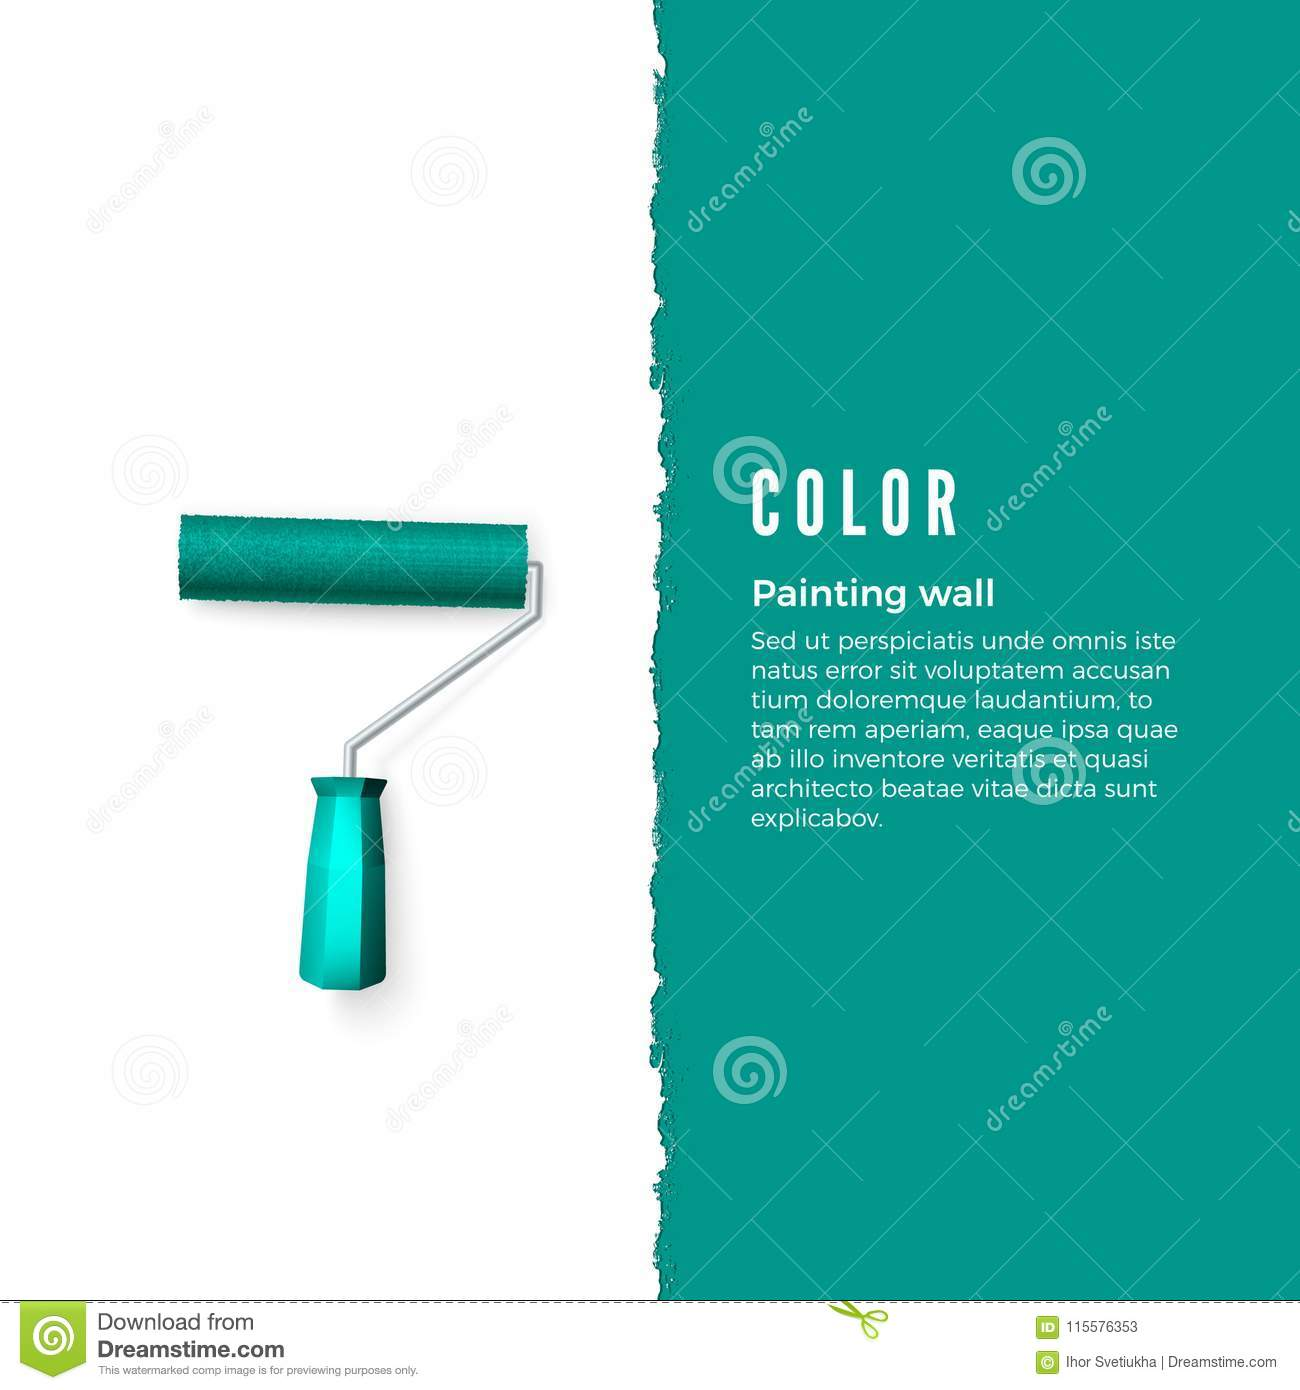 Paint Roller With Green Paint And Space For Text Or Other Design On